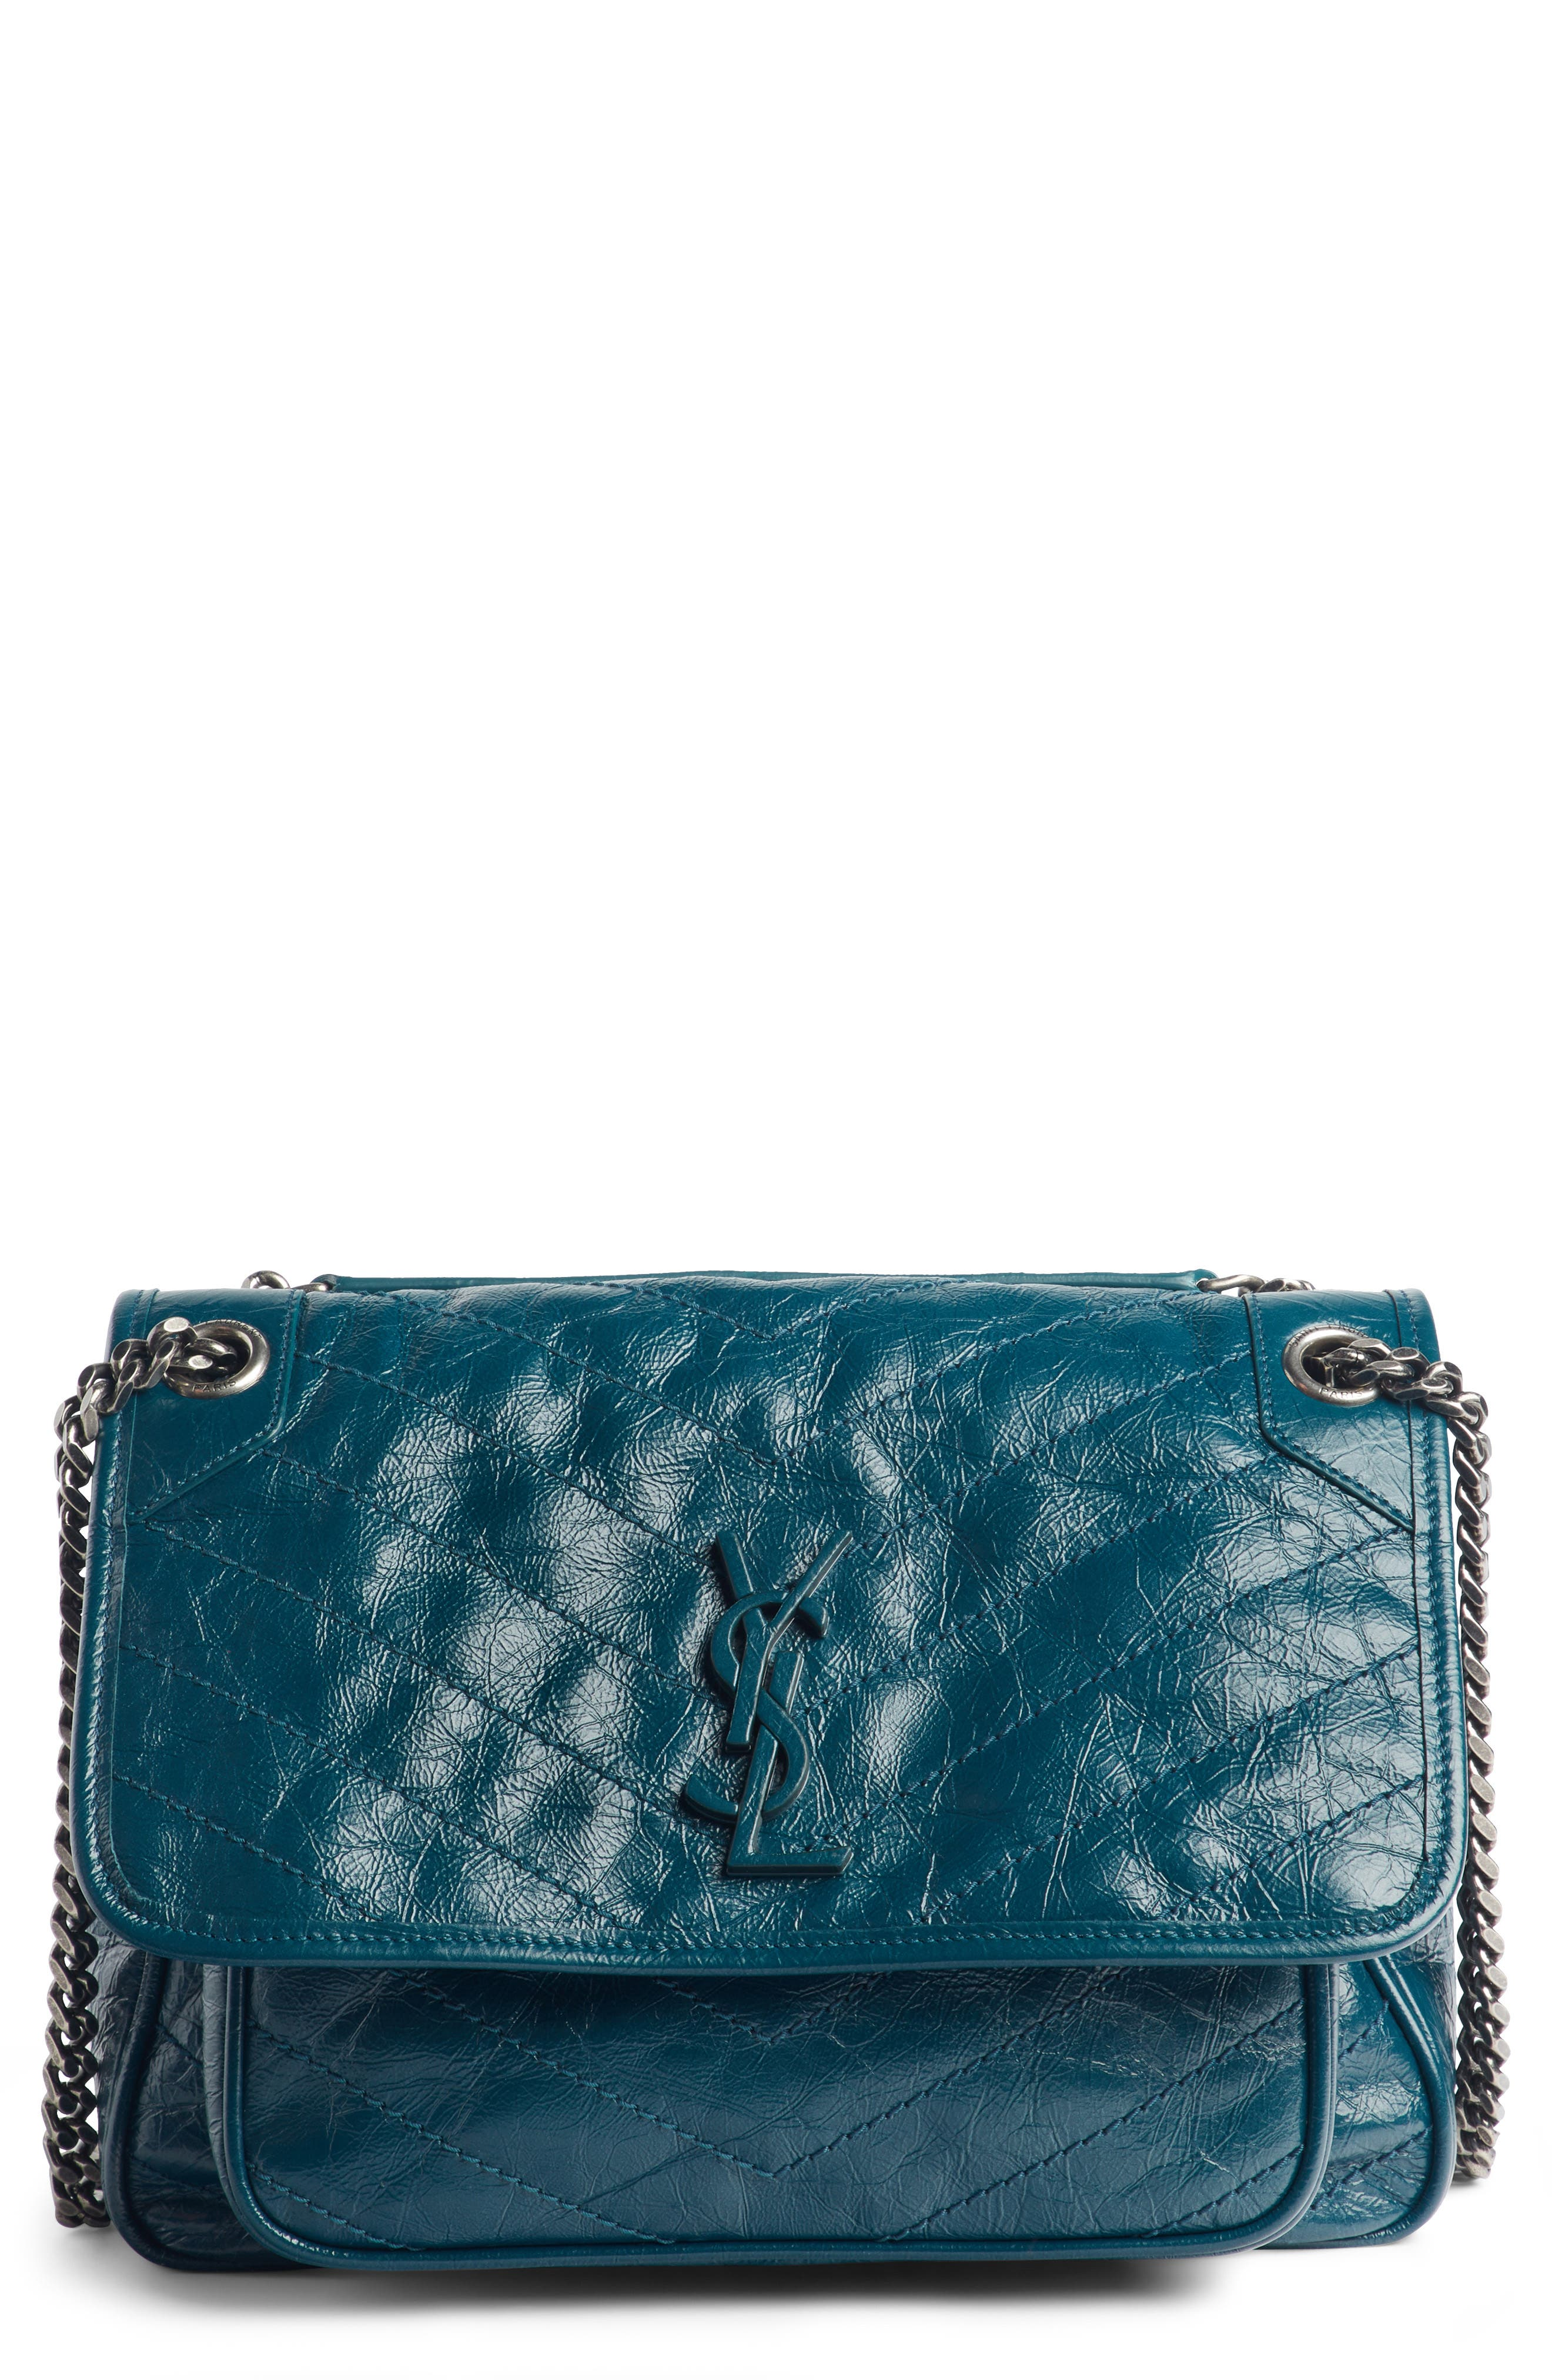 Medium Niki Leather Shoulder Bag,                             Main thumbnail 1, color,                             Dark Turquoise